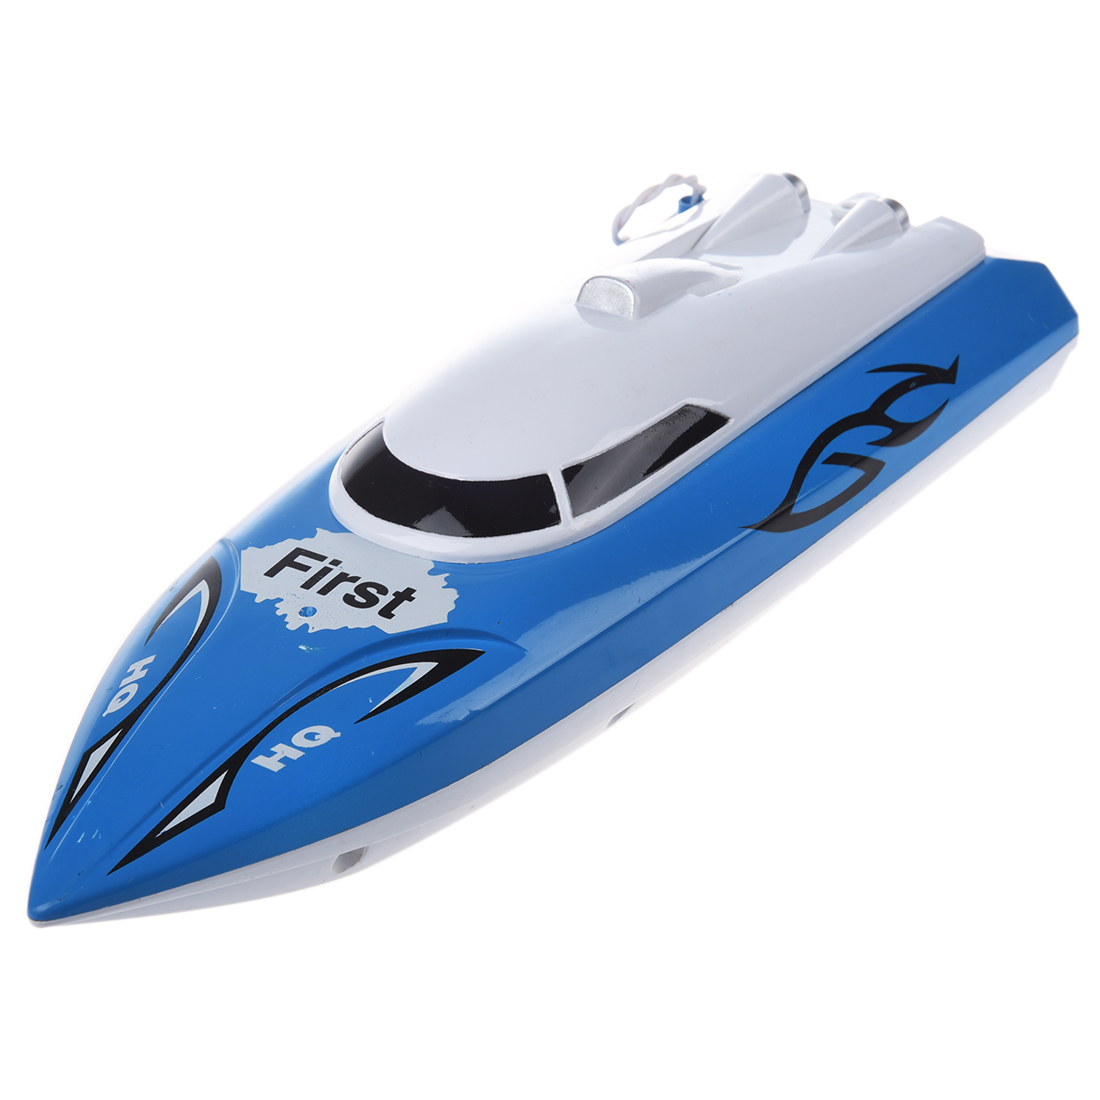 10 inch Mini RC Boat Radio Remote Control RTR Electric Dual Motor Toy Colour Blue Red